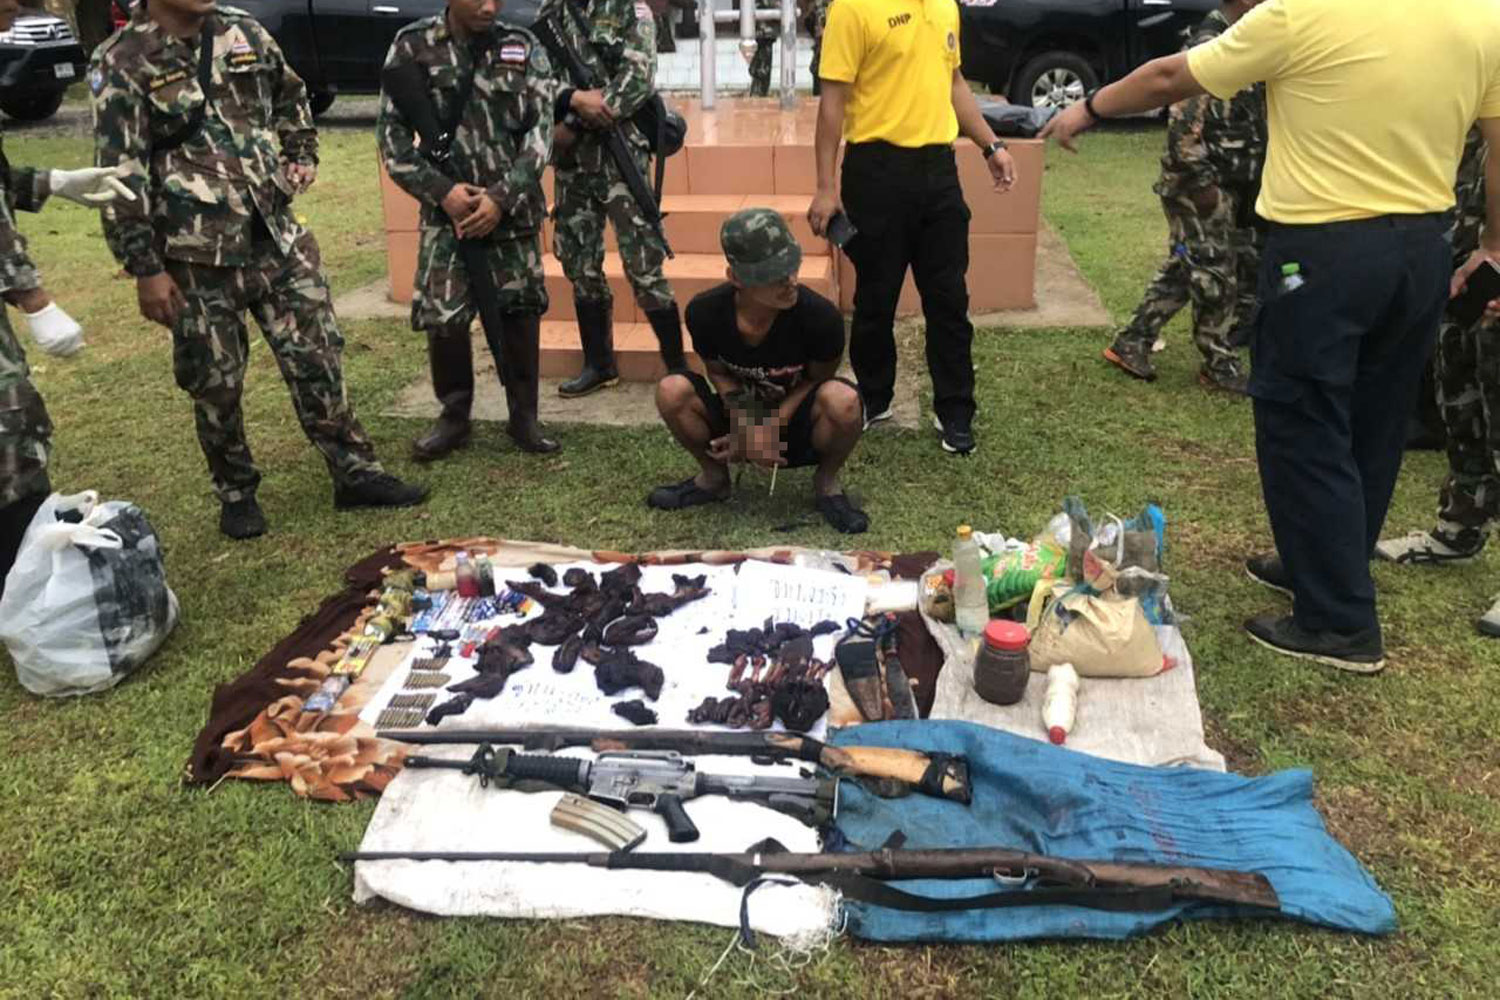 Karen hunter Satu, 26, is brought to the office of the Sai Yok National Park in Kanchanaburi province after he was arrested with the bearcat and macaque carcasses and the weapons in the national park on Wednesday. (Photo from the Sai Yok National Park office)